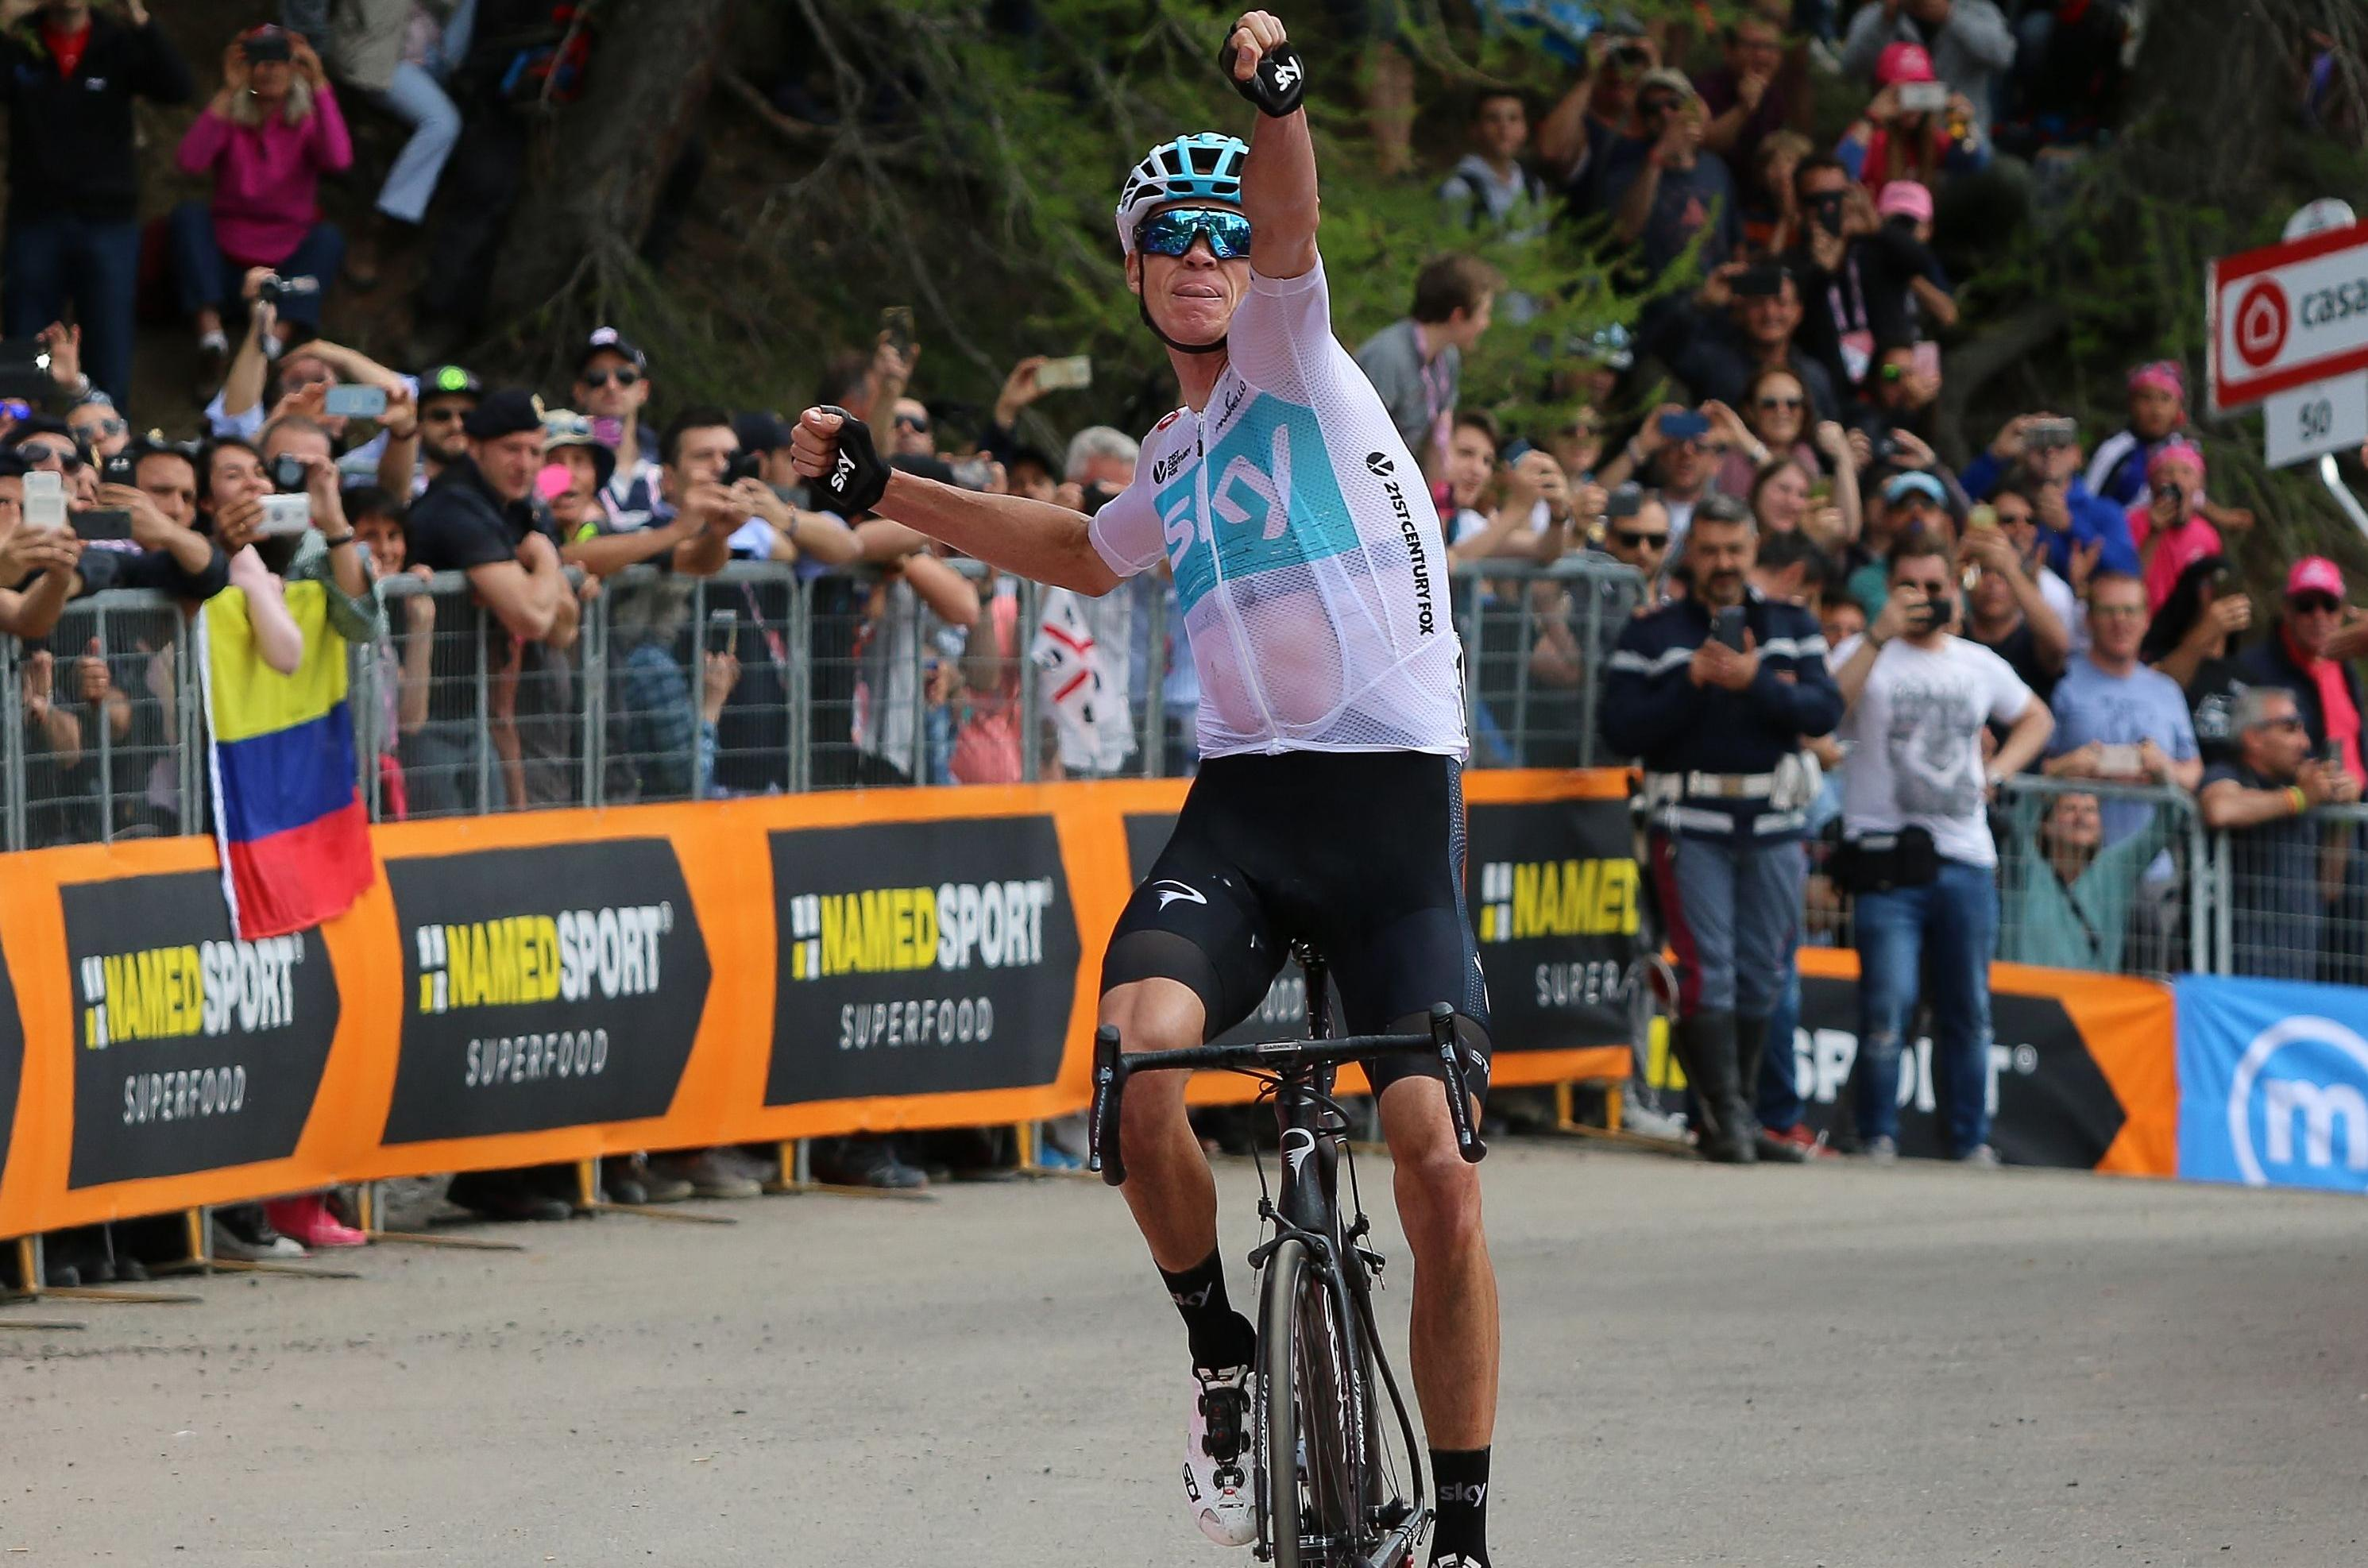 A moment of pure sporting magic from Chris Froome